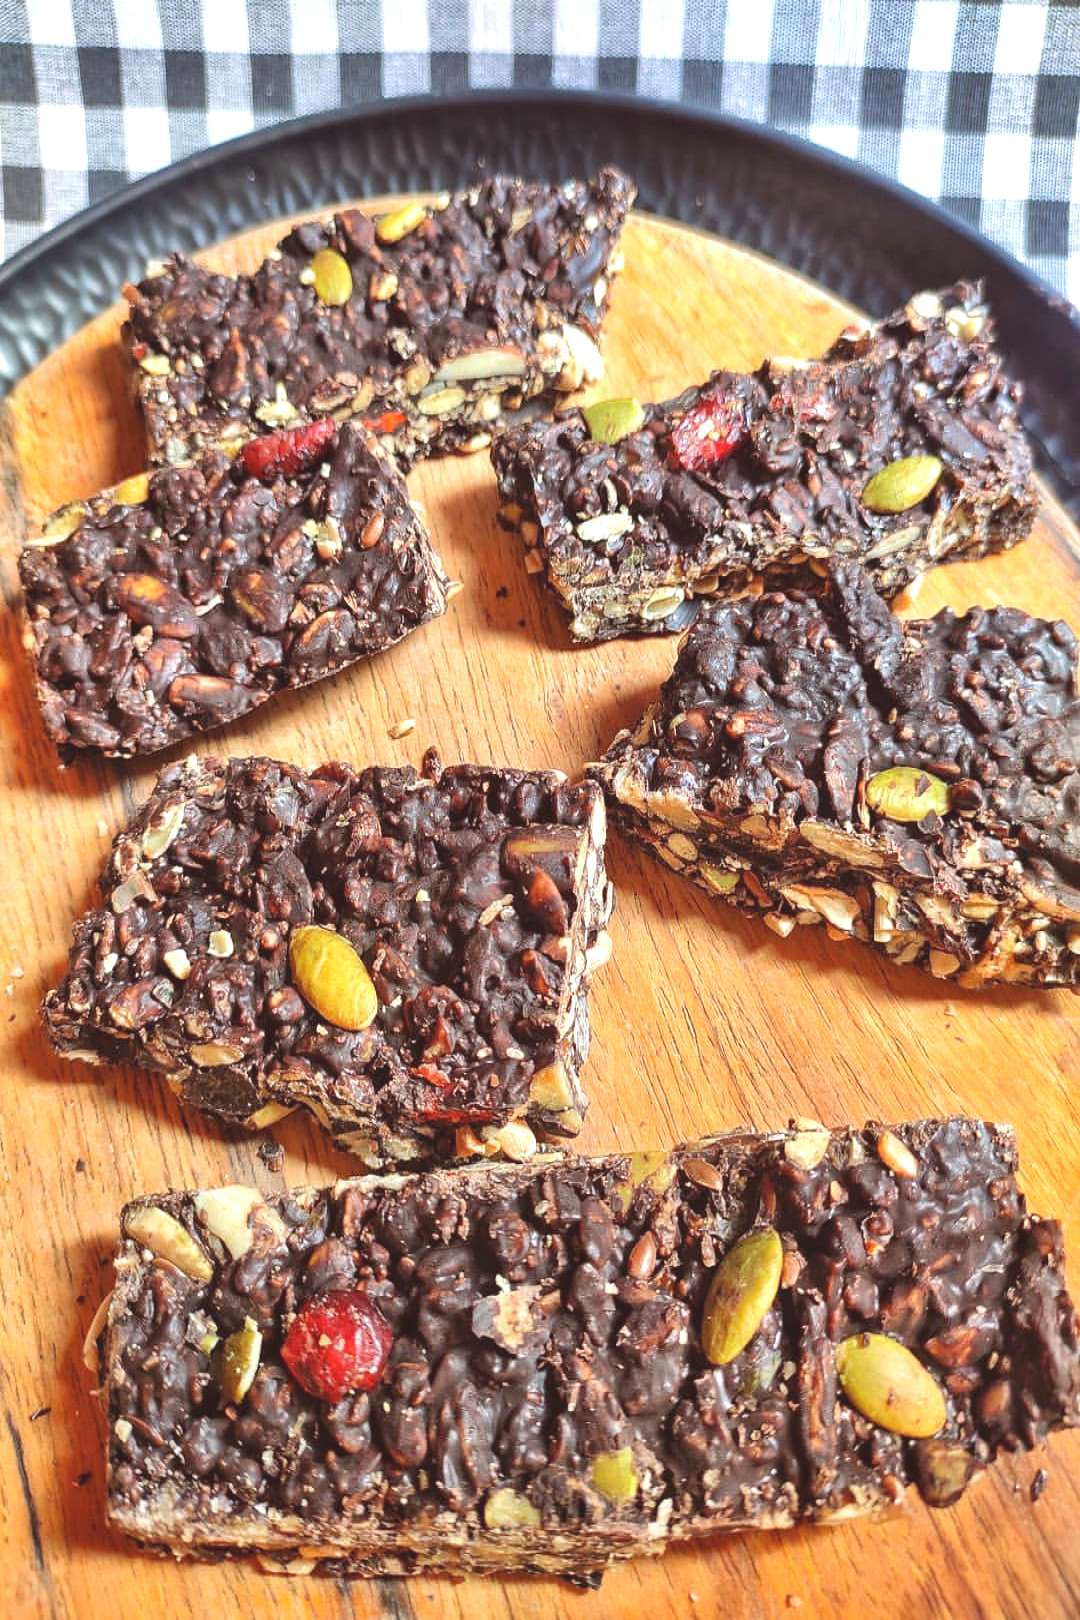 Hey guys! I just uploaded chocolate Granola Bar recipe on my YouT